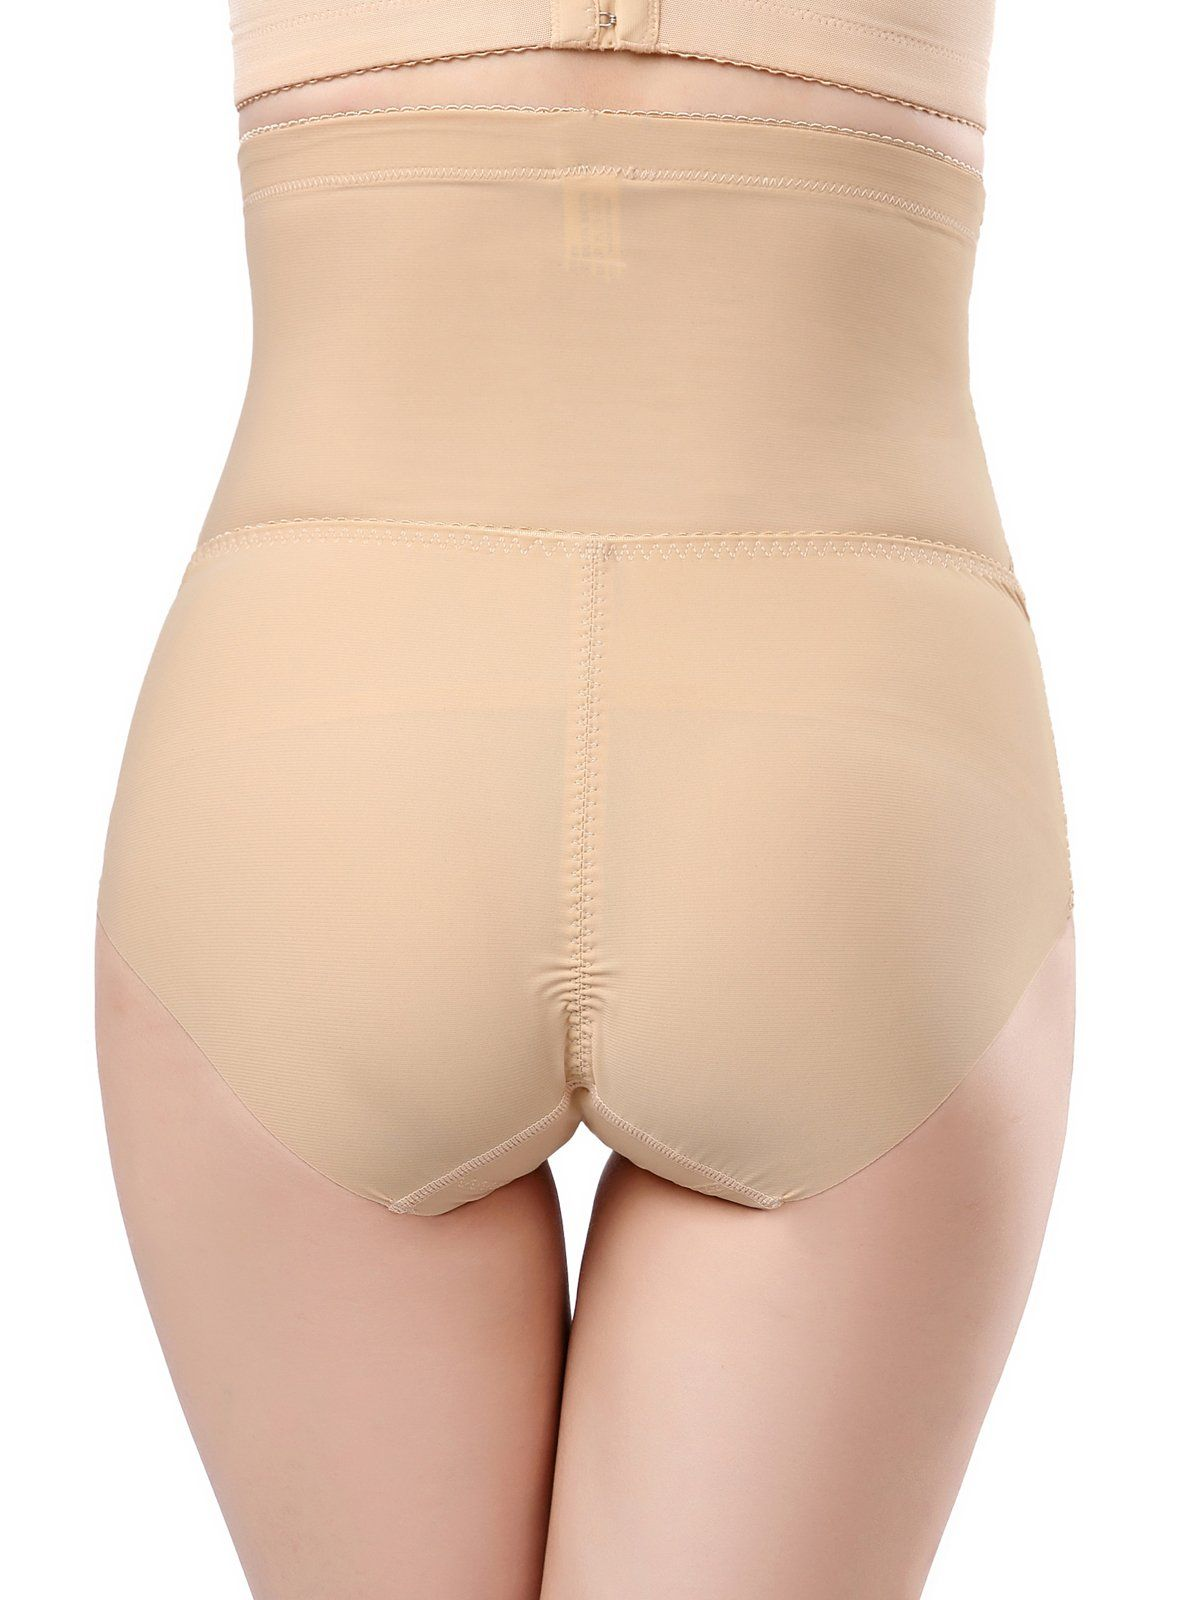 cce930532752 DODOING High Waist Butt Lifter Shapewear with Tummy Control Panties  Underwear for Women ***